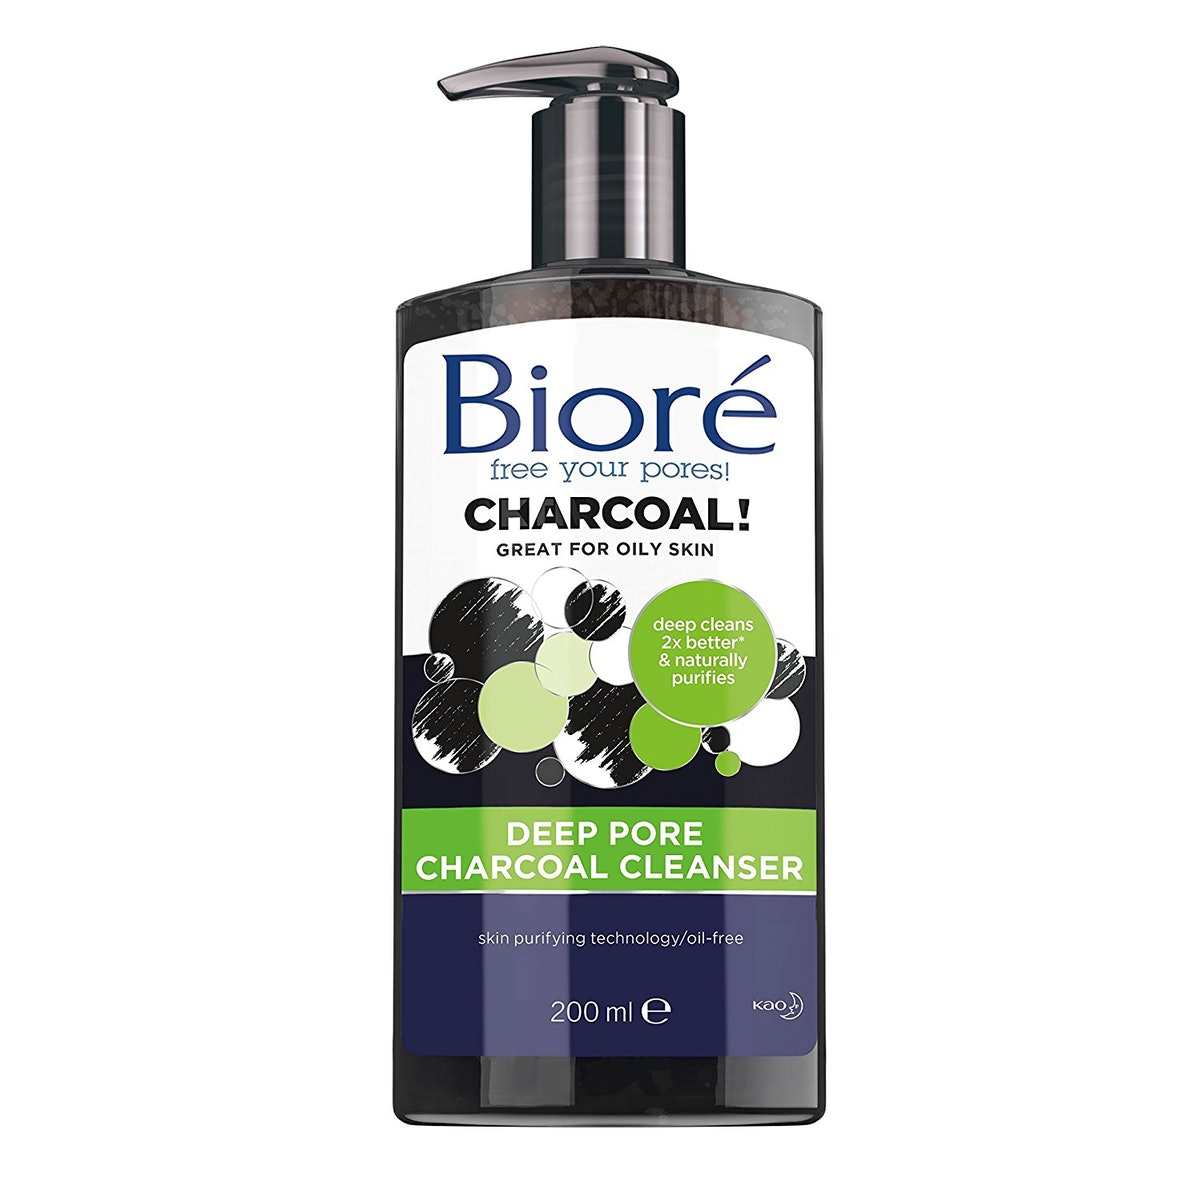 Deep Pore Charcoal Cleanser